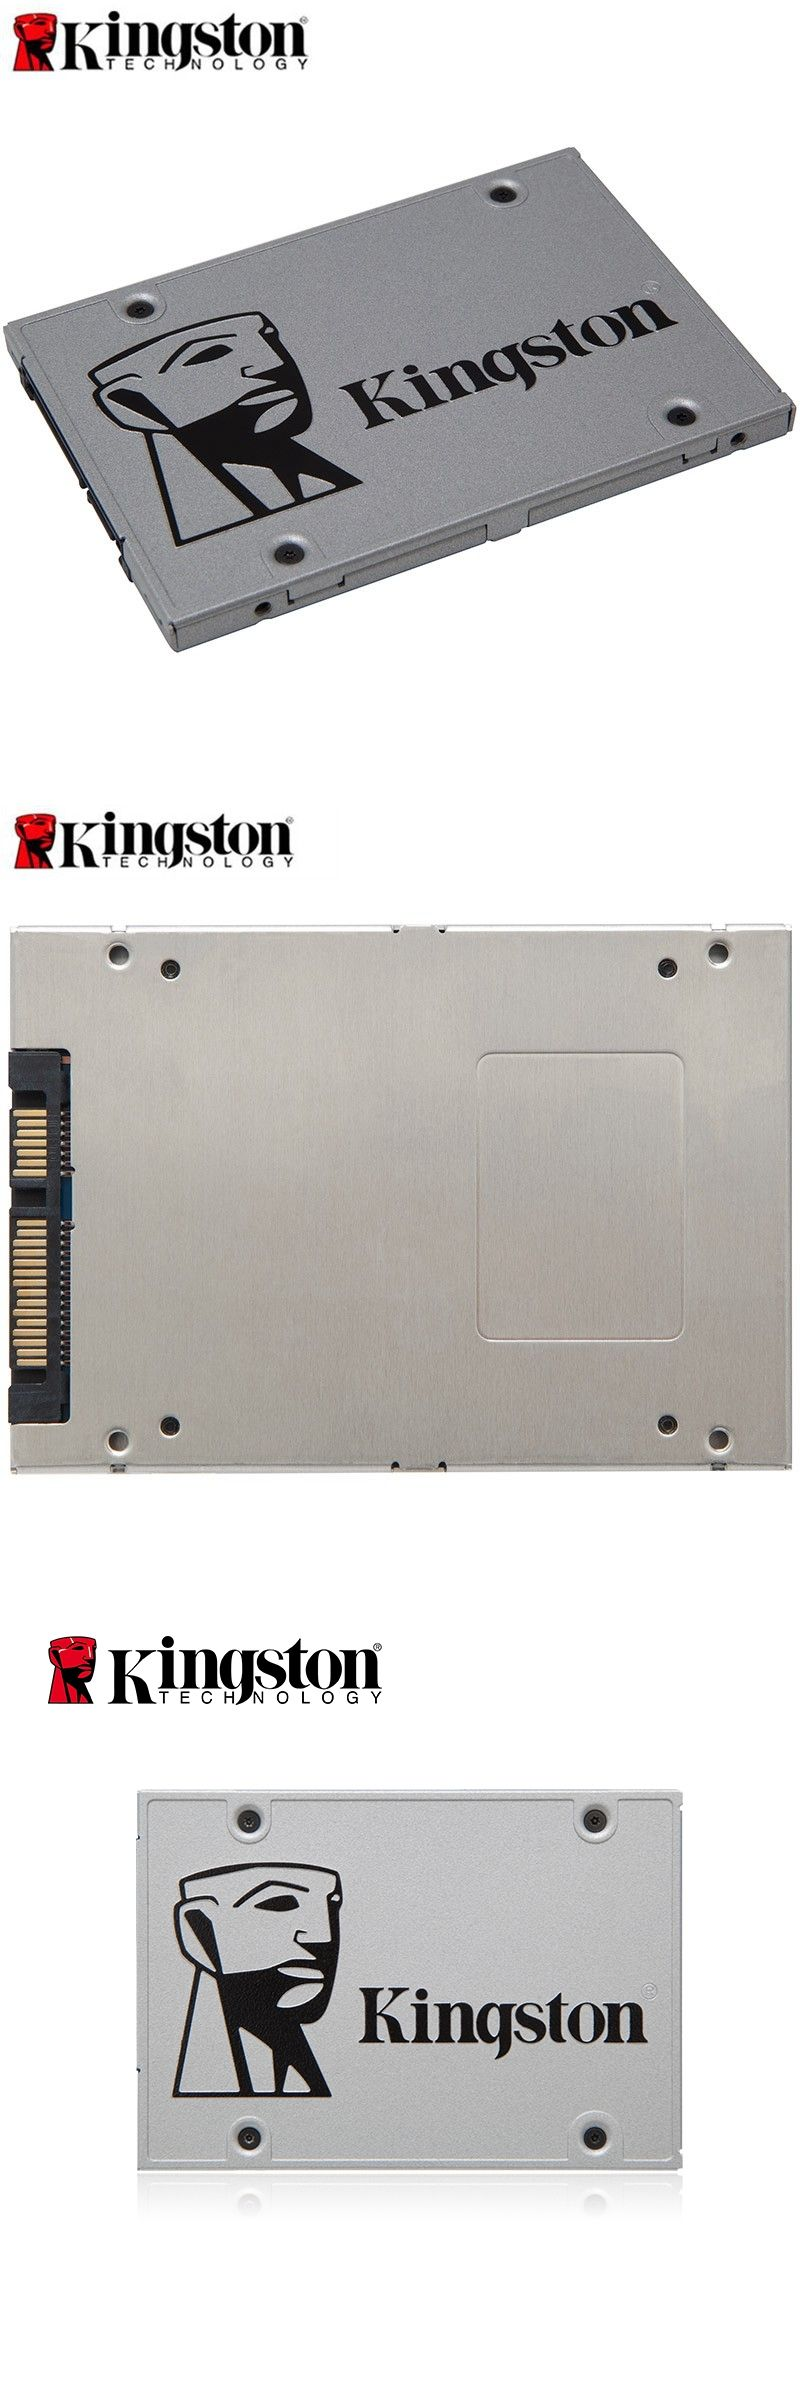 Original Kingston Ssdnow Suv400s37 120gb Solid State Drive Internal Ssd Sata Iii 25 Inch Hard Disk